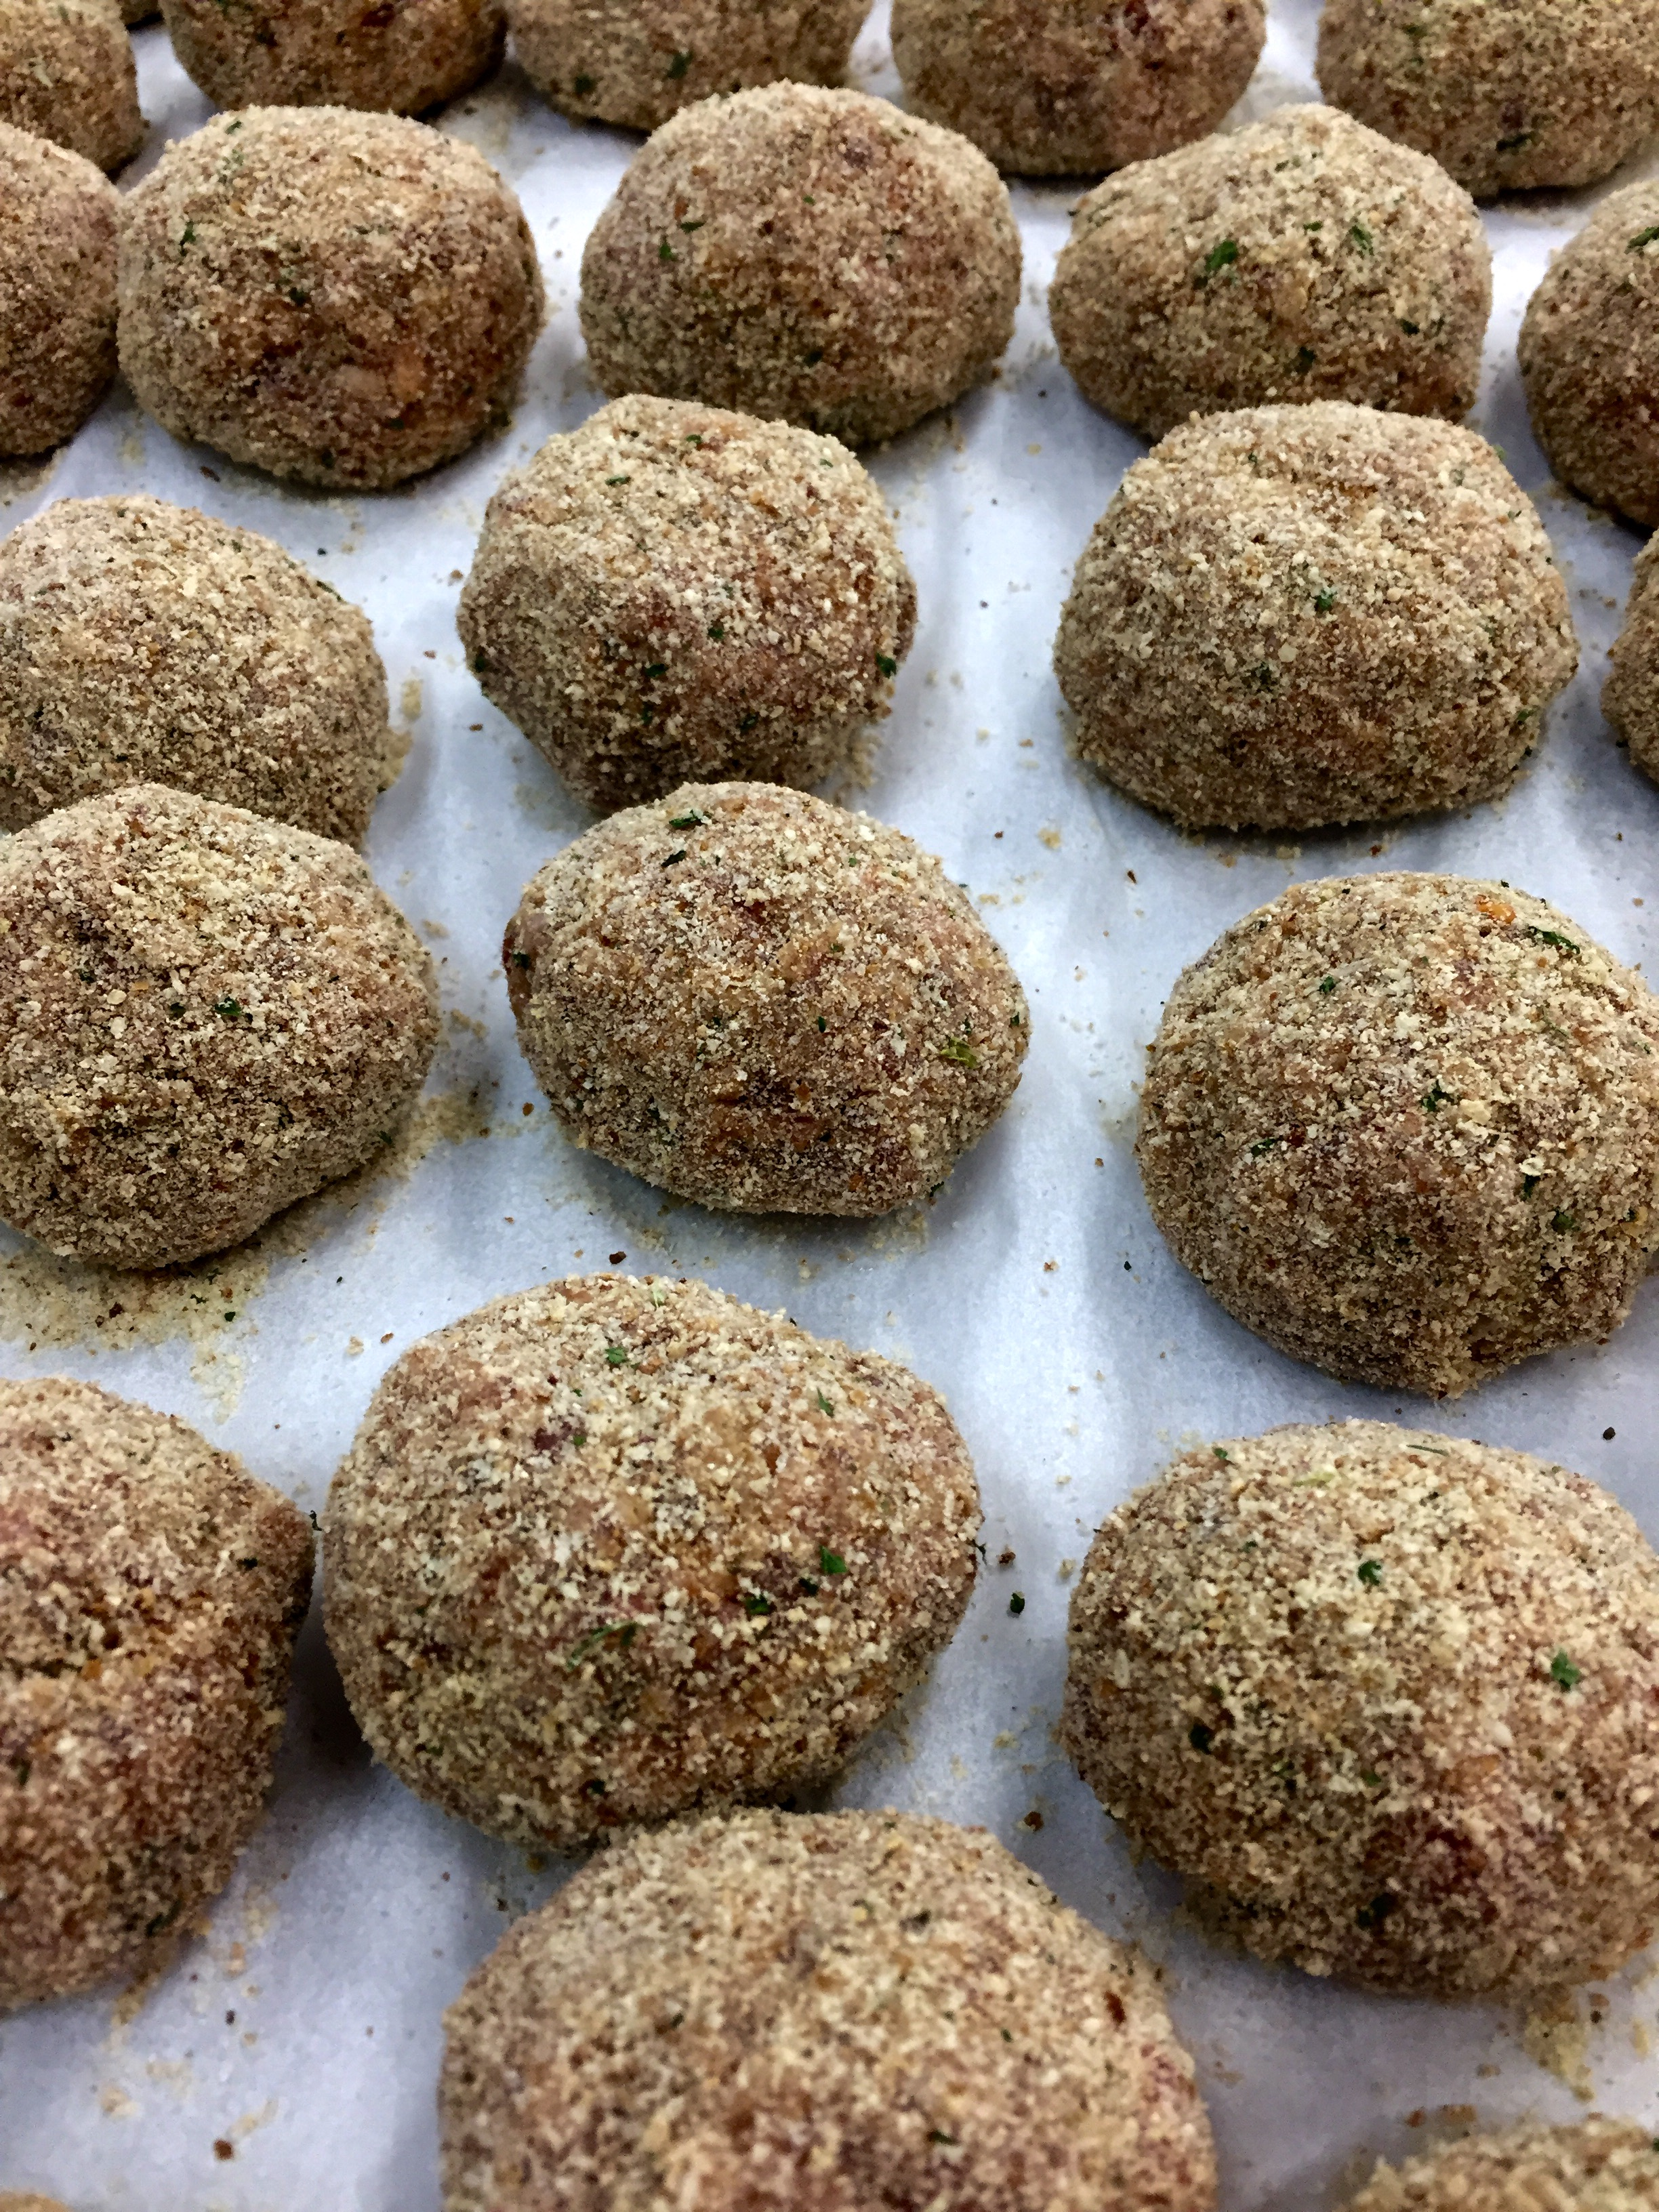 Hand-rolled meatballs breaded and ready to fry.